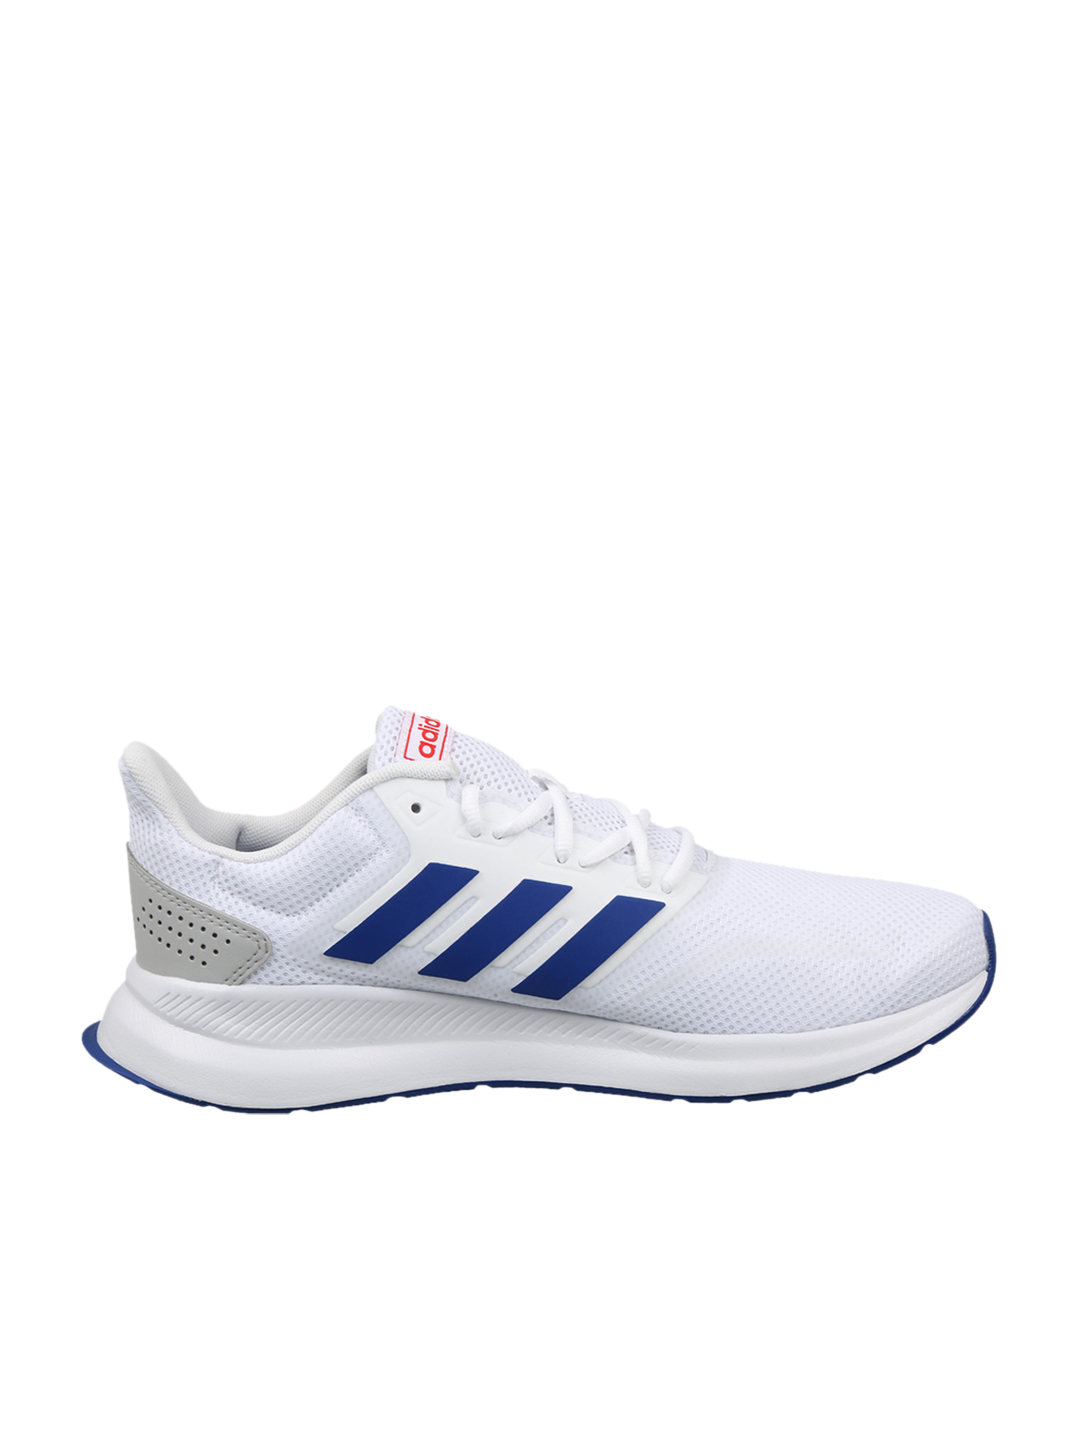 Buy Adidas Men's Runfalcon White Running Shoes Online at Best ...